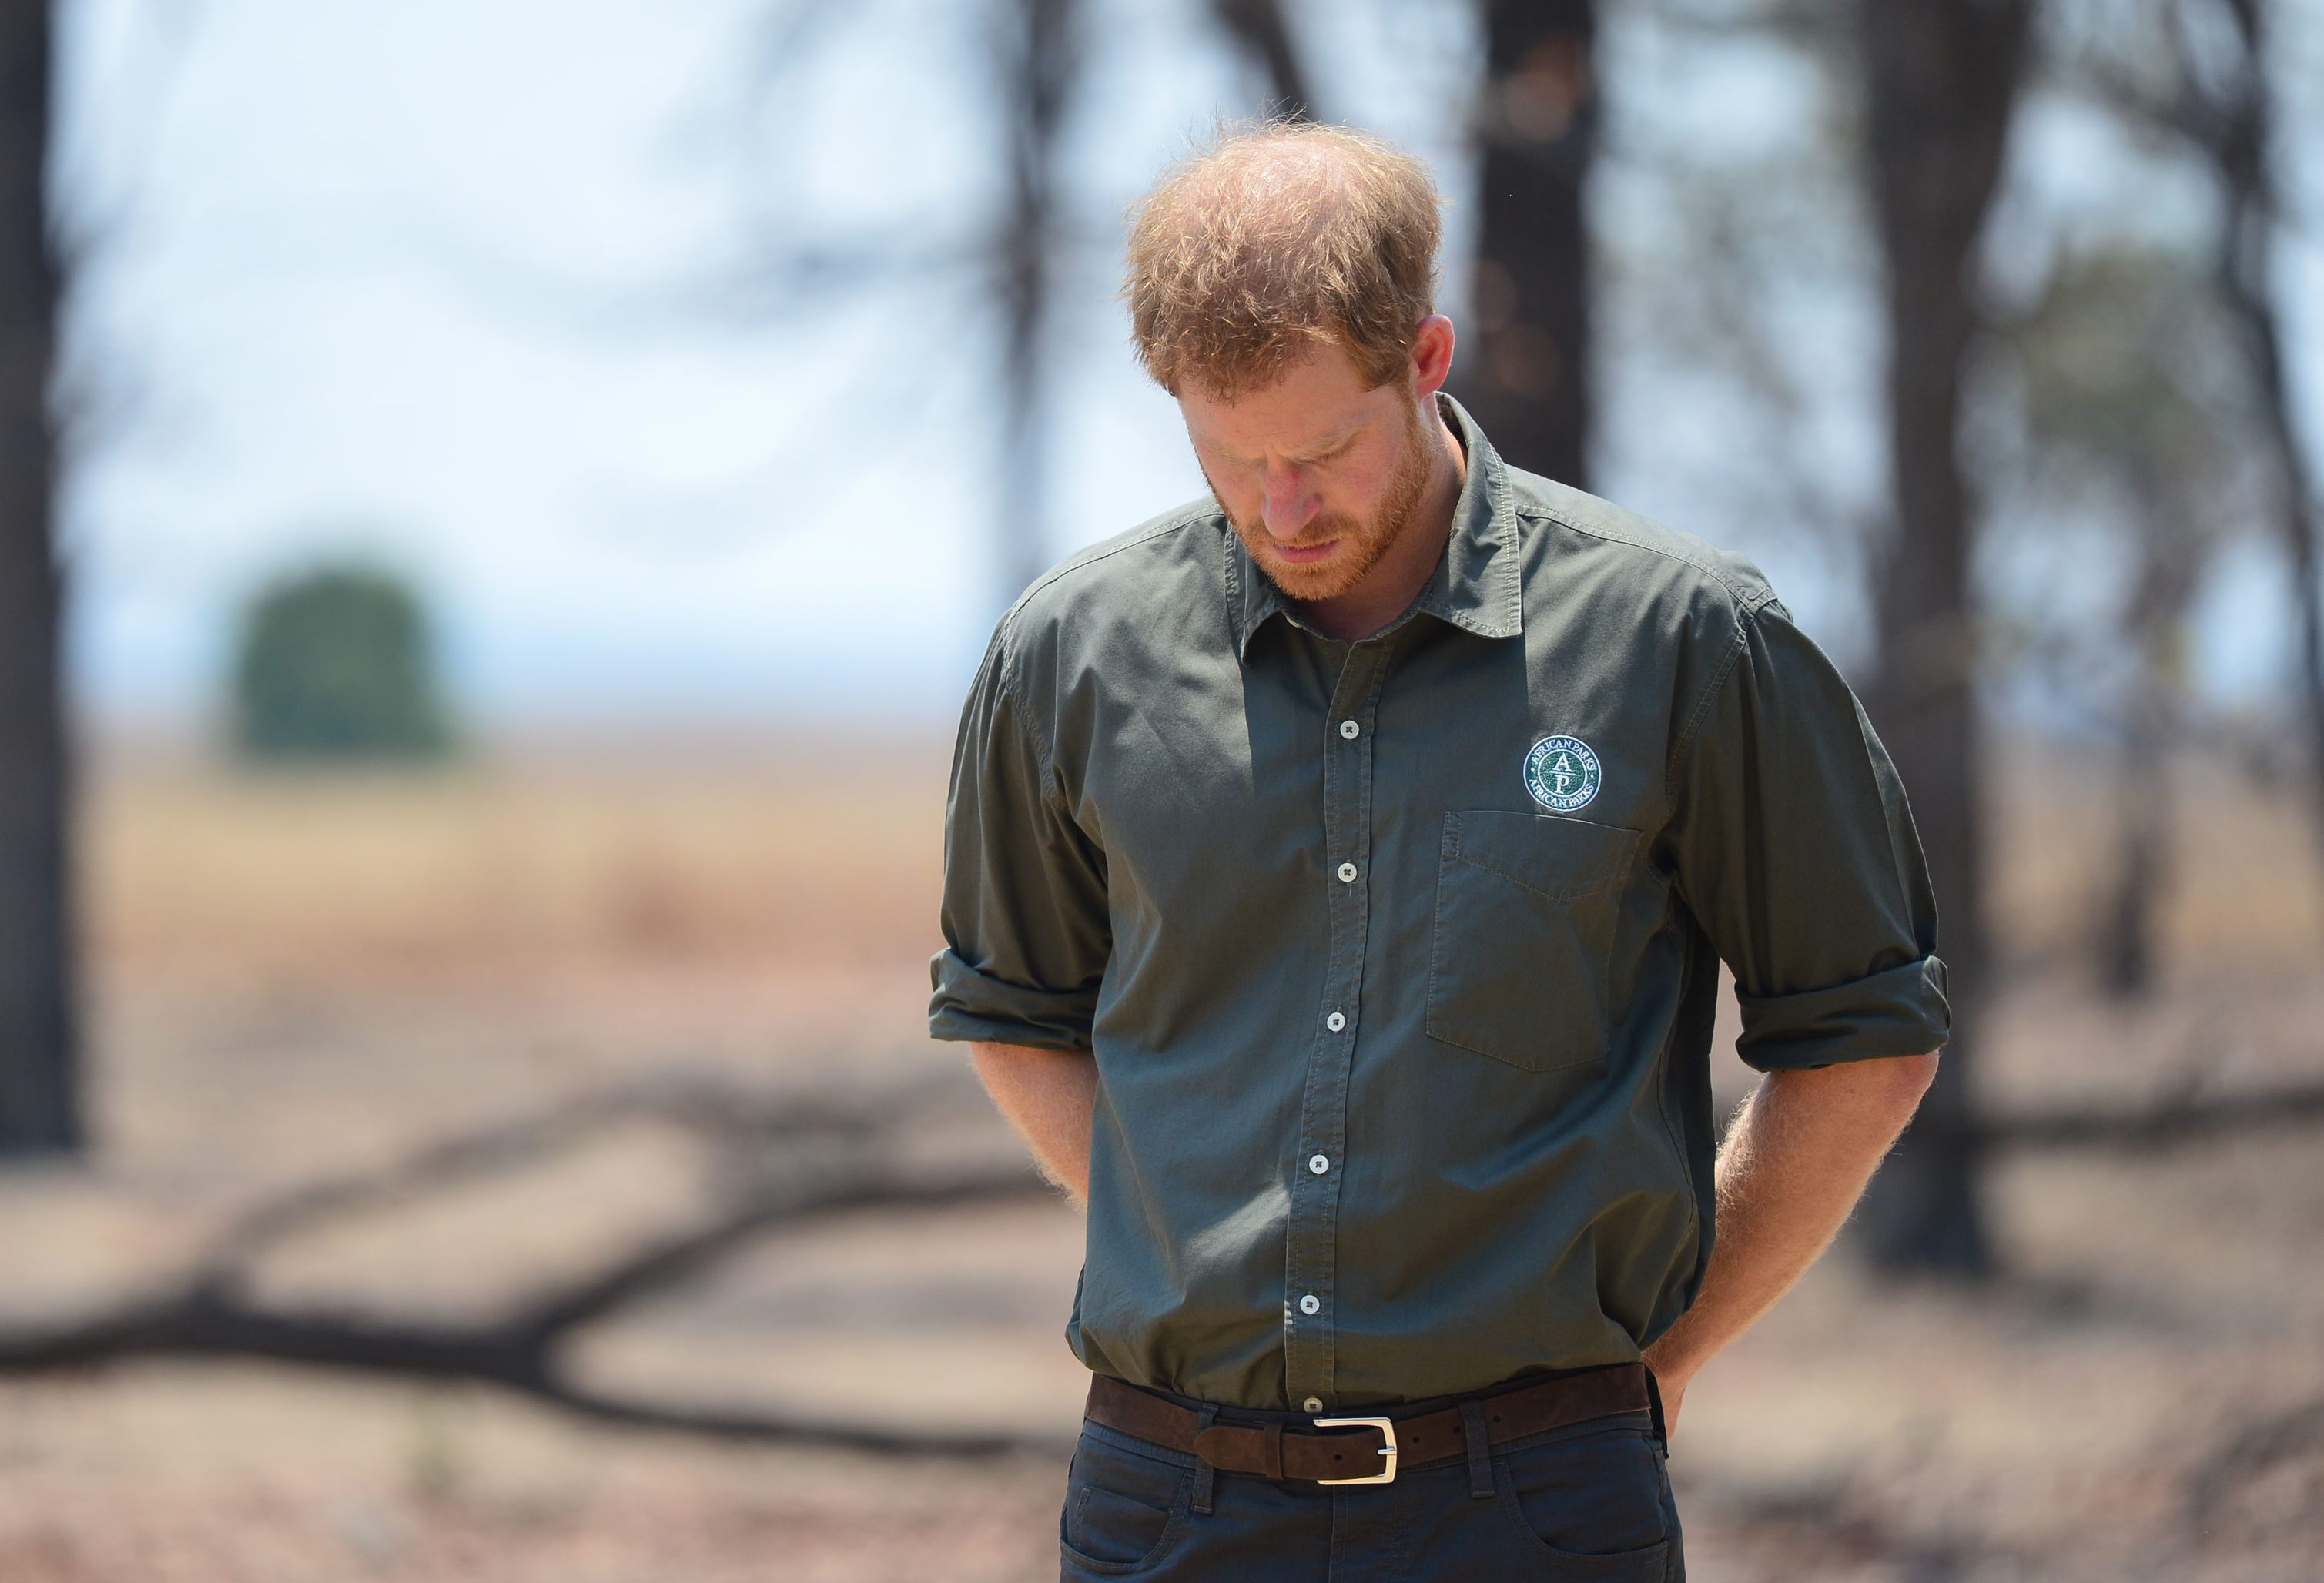 Mandatory Credit: Photo by Dominic Lipinski/Shutterstock (10430652l) Prince Harry pays tribute at the memorial site for Guardsman Mathew Talbot of the Coldstream Guards at the Liwonde National Park in Malawi, on day eight of the royal tour of Africa. PA Photo. Picture date: Monday September 30, 2019. Guardsman Talbot lost his life in May 2019 on a joint anti-poaching patrol with local park rangers. Prince Harry visit to Africa - 30 Sep 2019